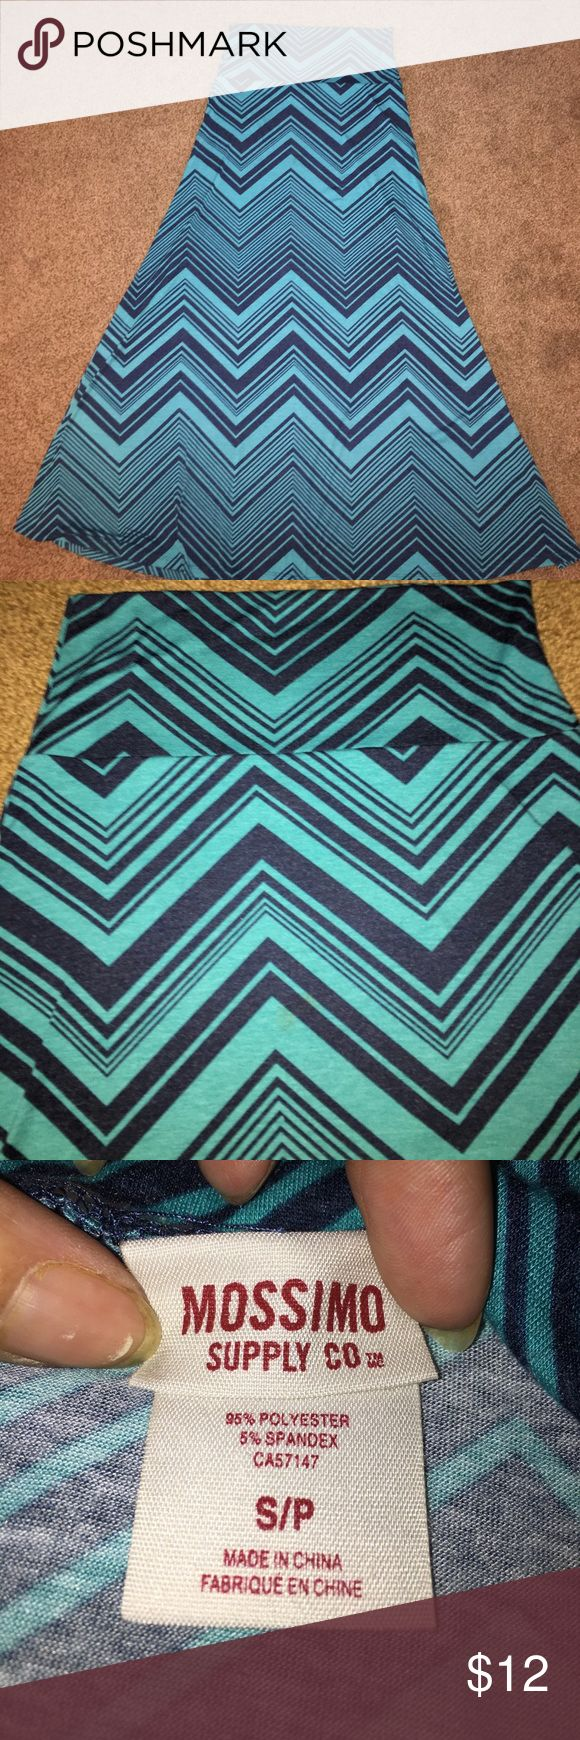 Dark teal and navy chevron maxi skirt This dark teal and navy chevron maxi skirt was worn once in perfect condition Mossimo Supply Co. Skirts Maxi